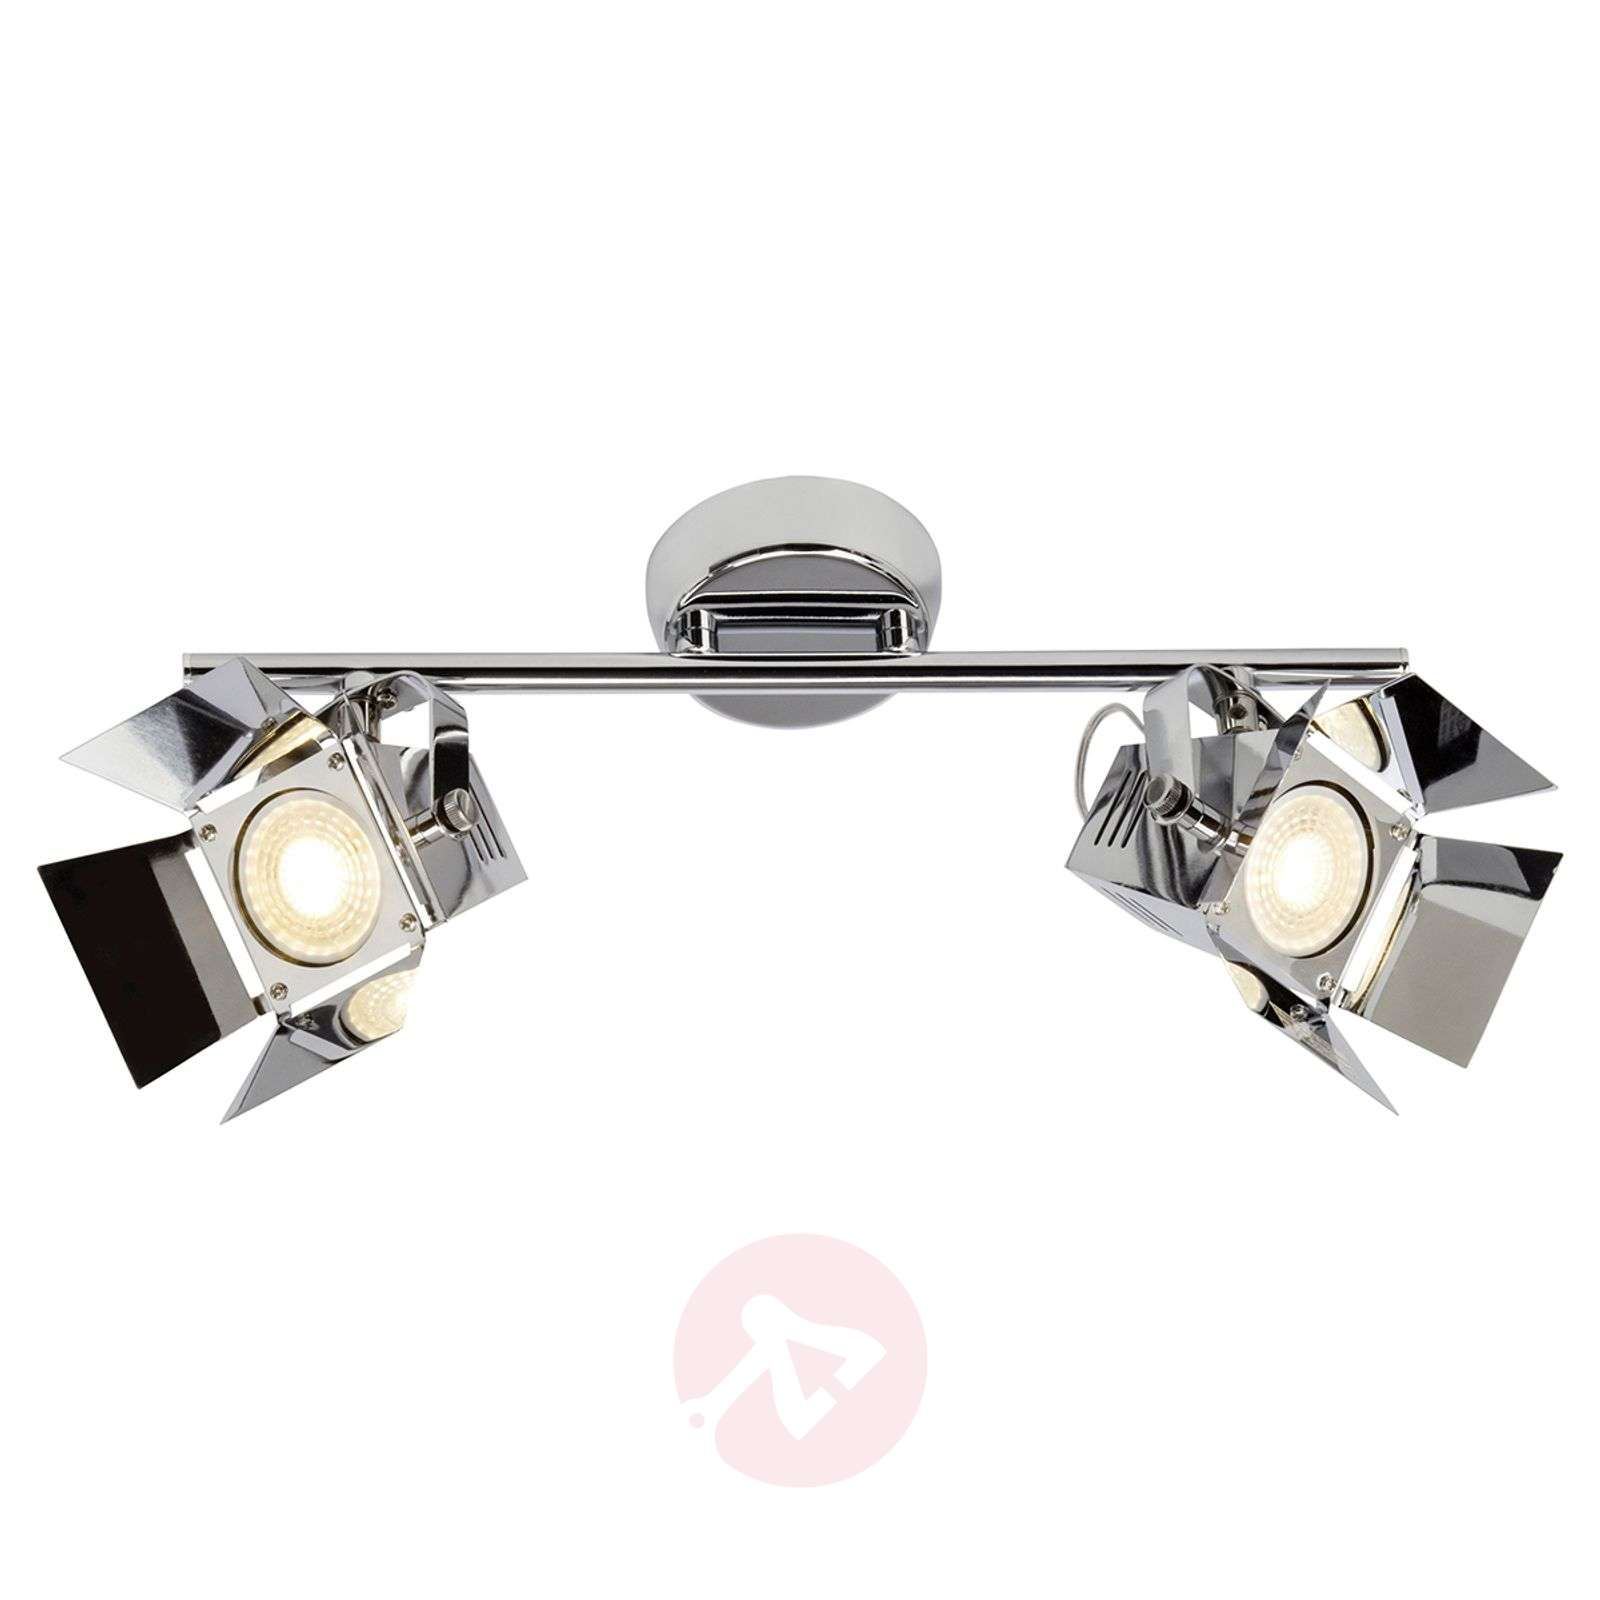 2 bulb led spotlight ceiling light movie lights 2 bulb led spotlight ceiling light movie chrome 1509129 01 aloadofball Image collections